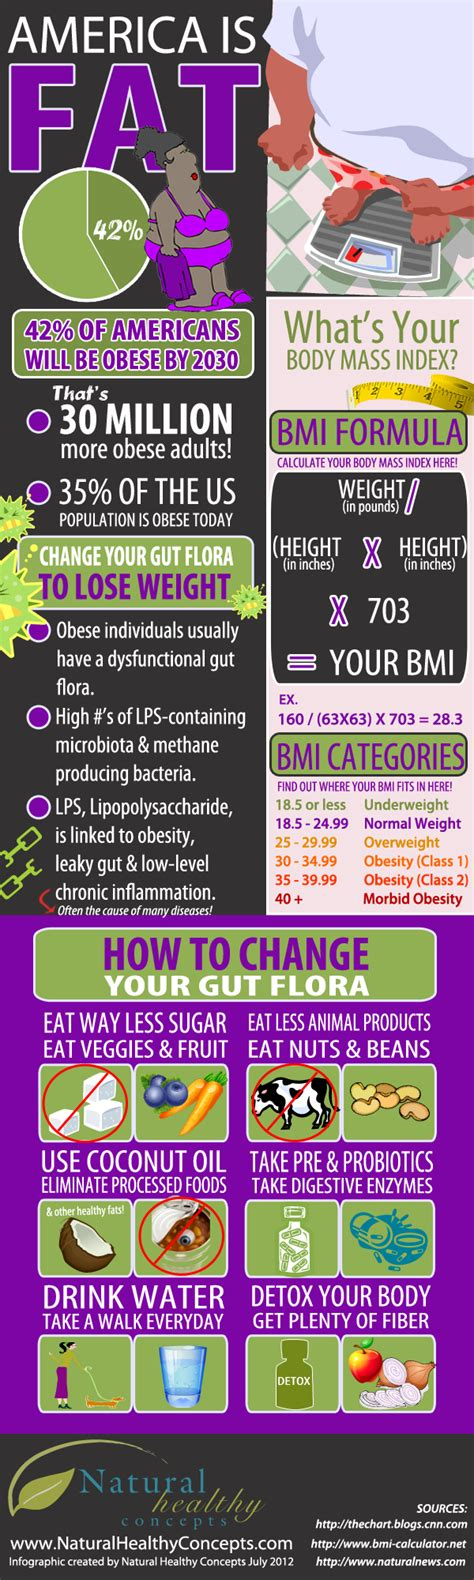 healthy fats infographic change your gut flora to lose weight infographic